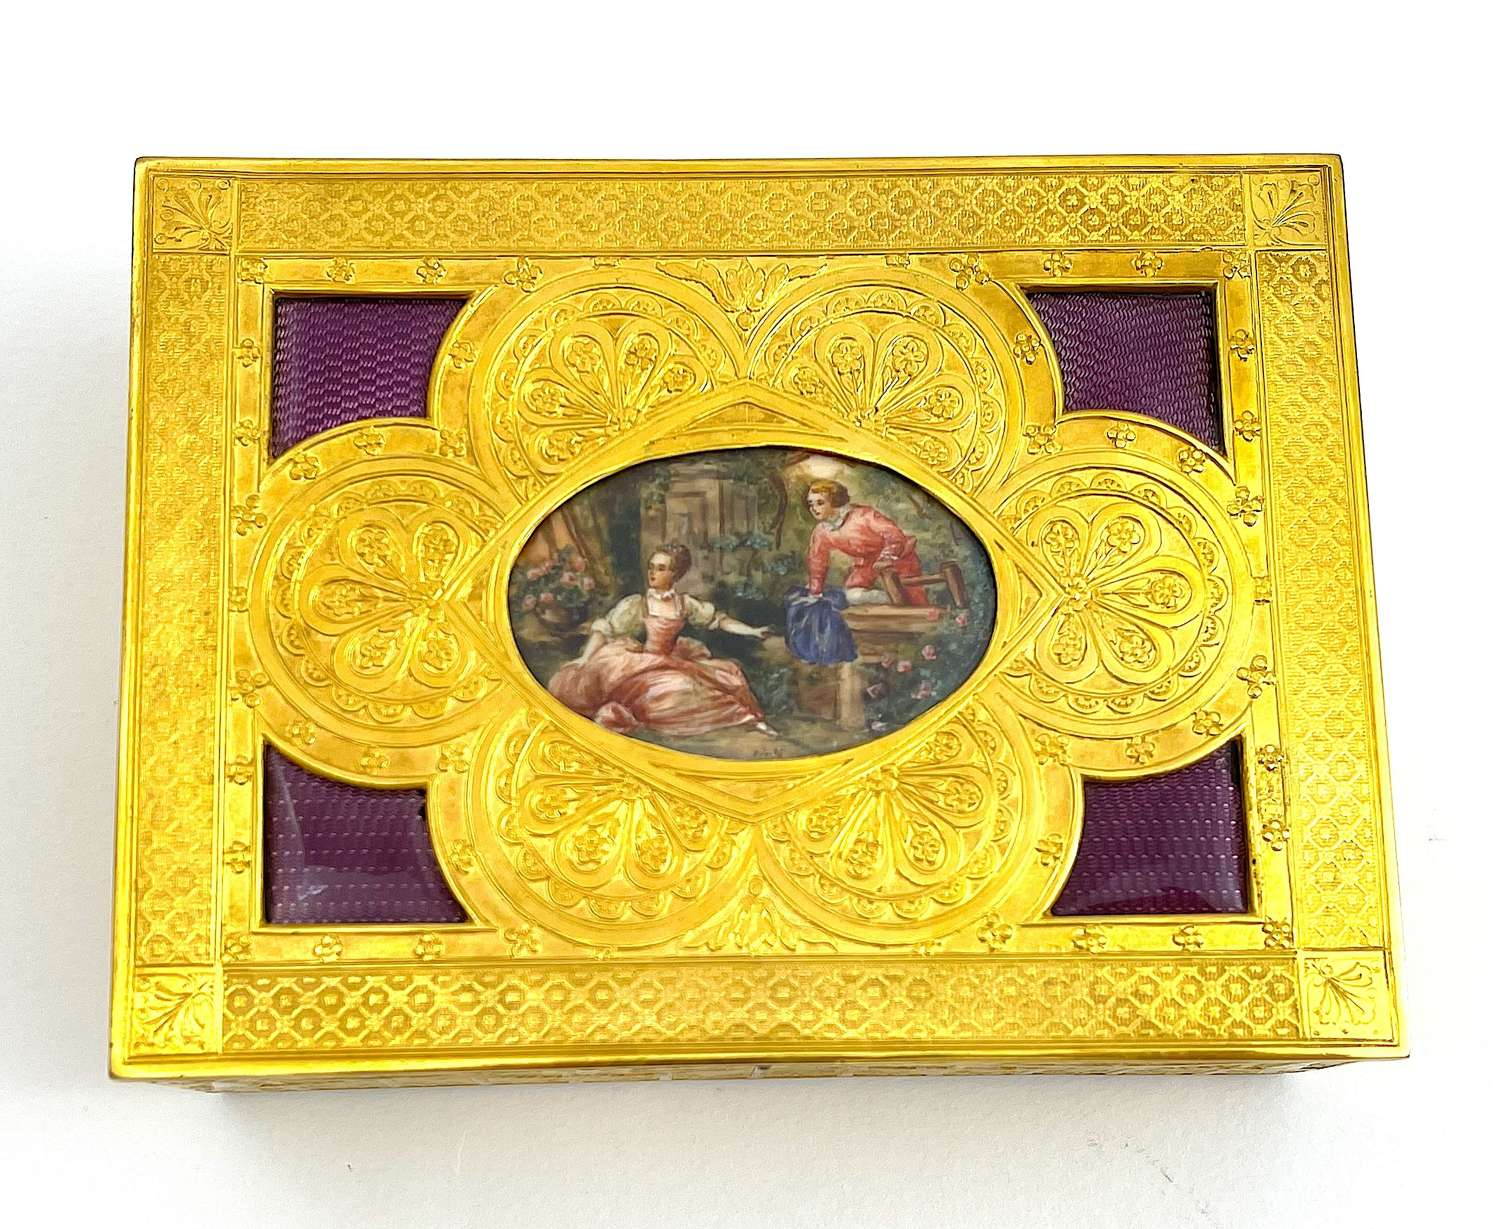 High Quality FrenchGuillouche Enamel and Dore BronzeJewellery Box